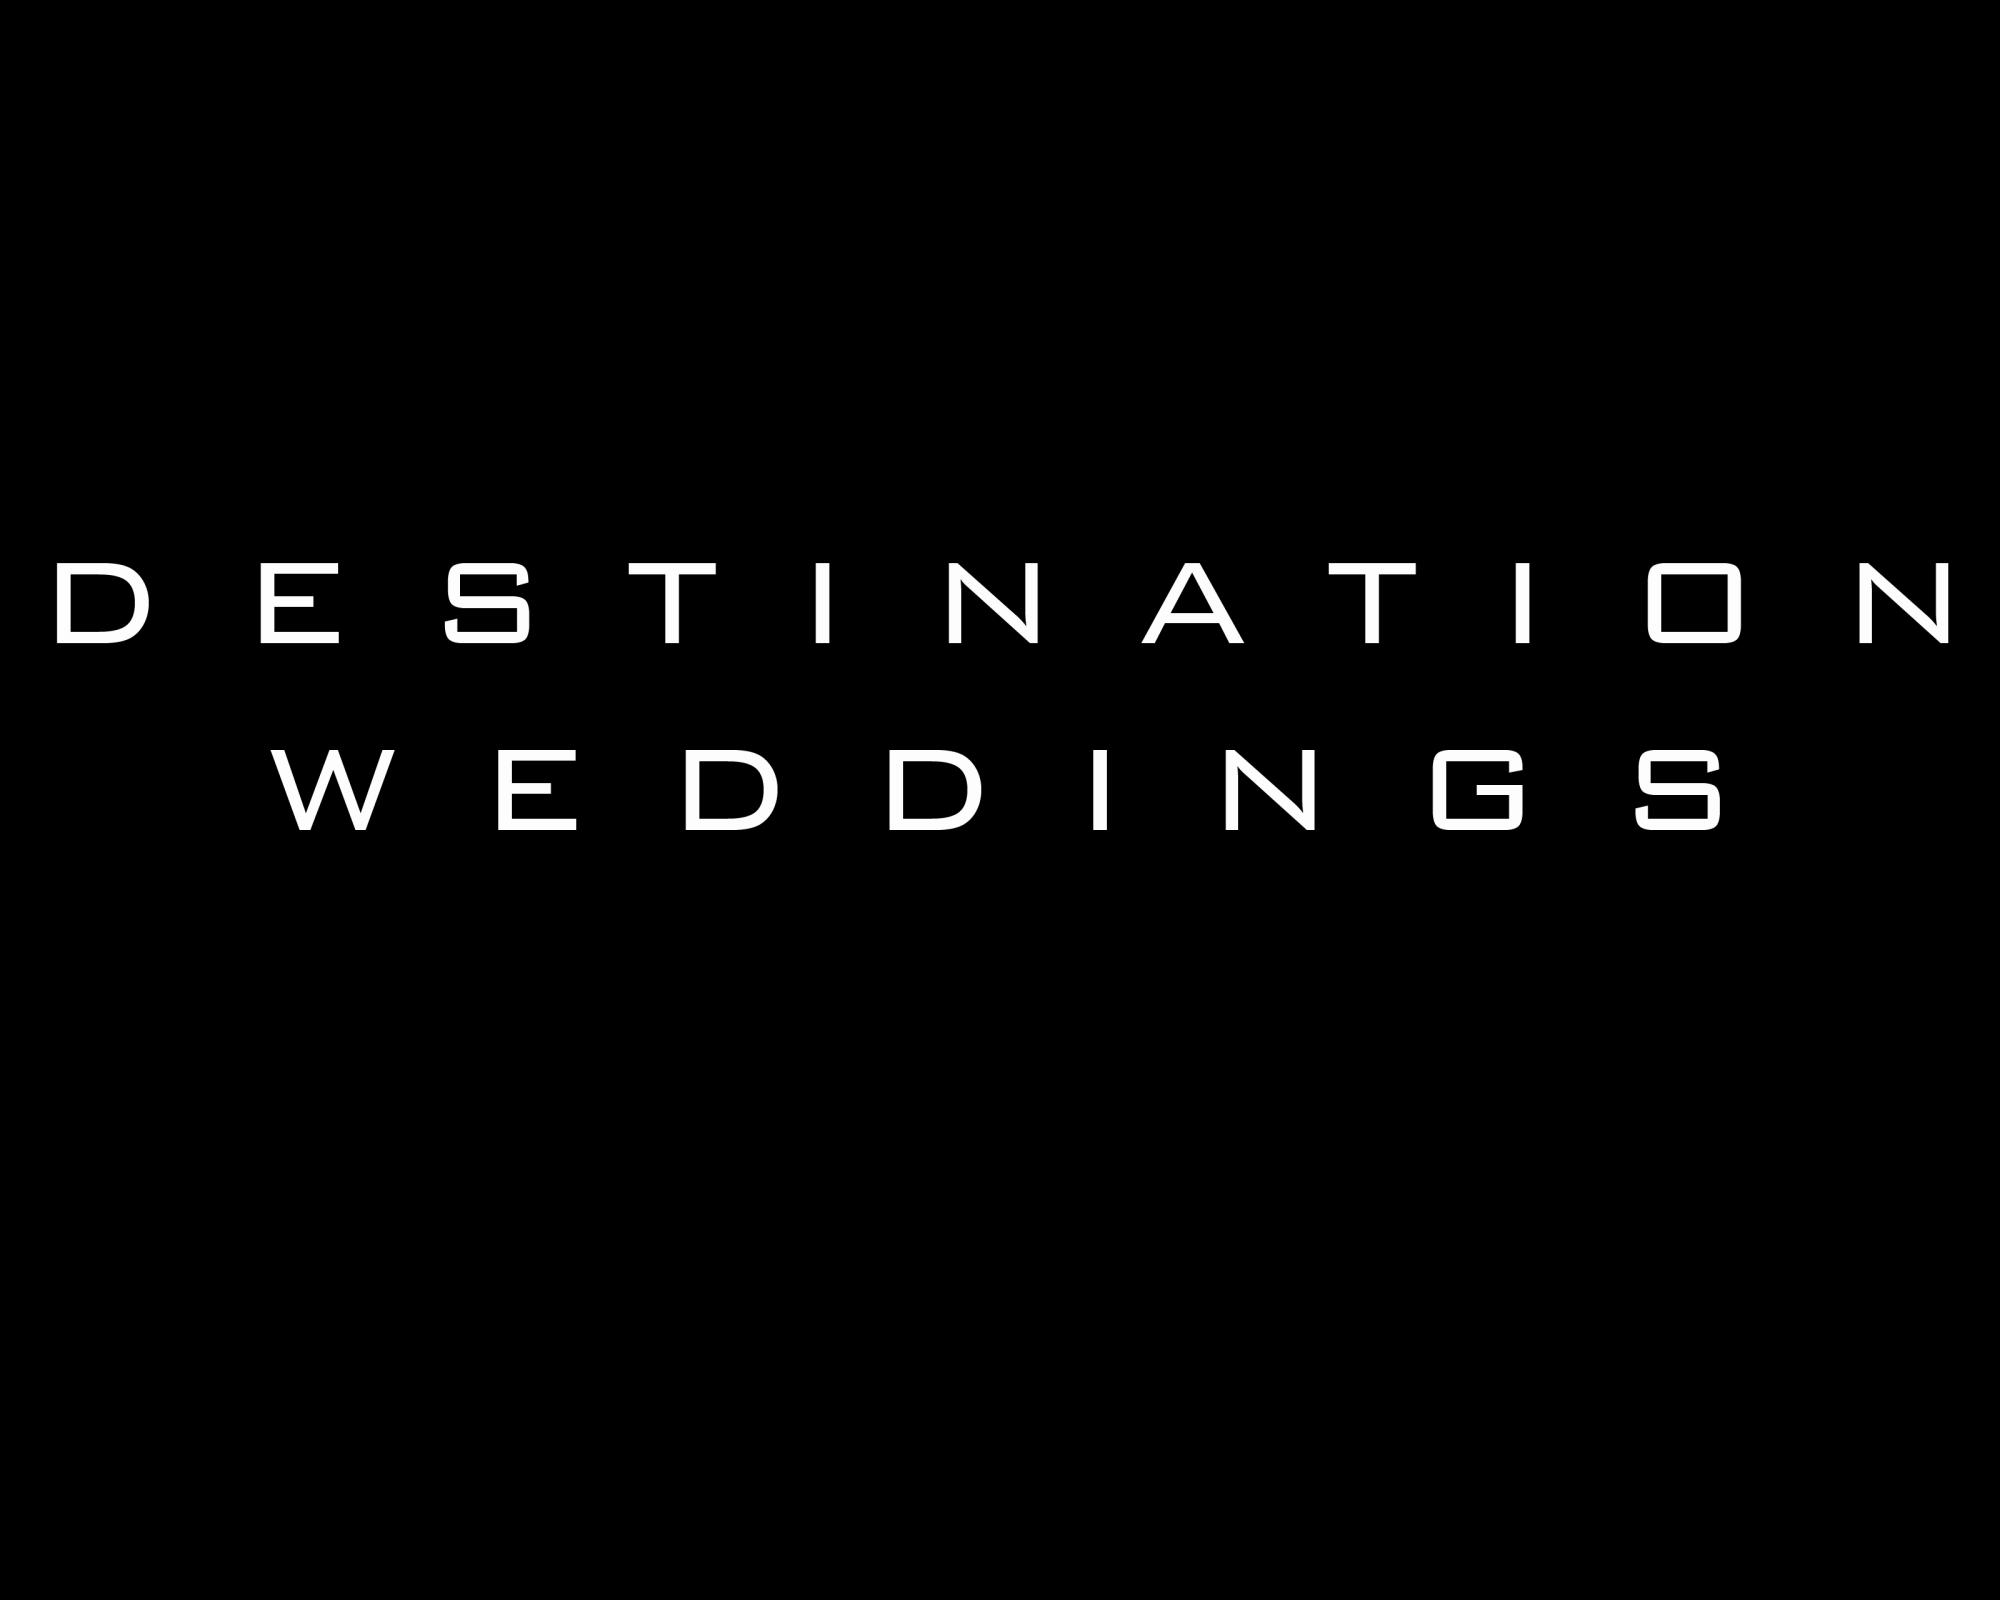 Destination_Weddings.jpg